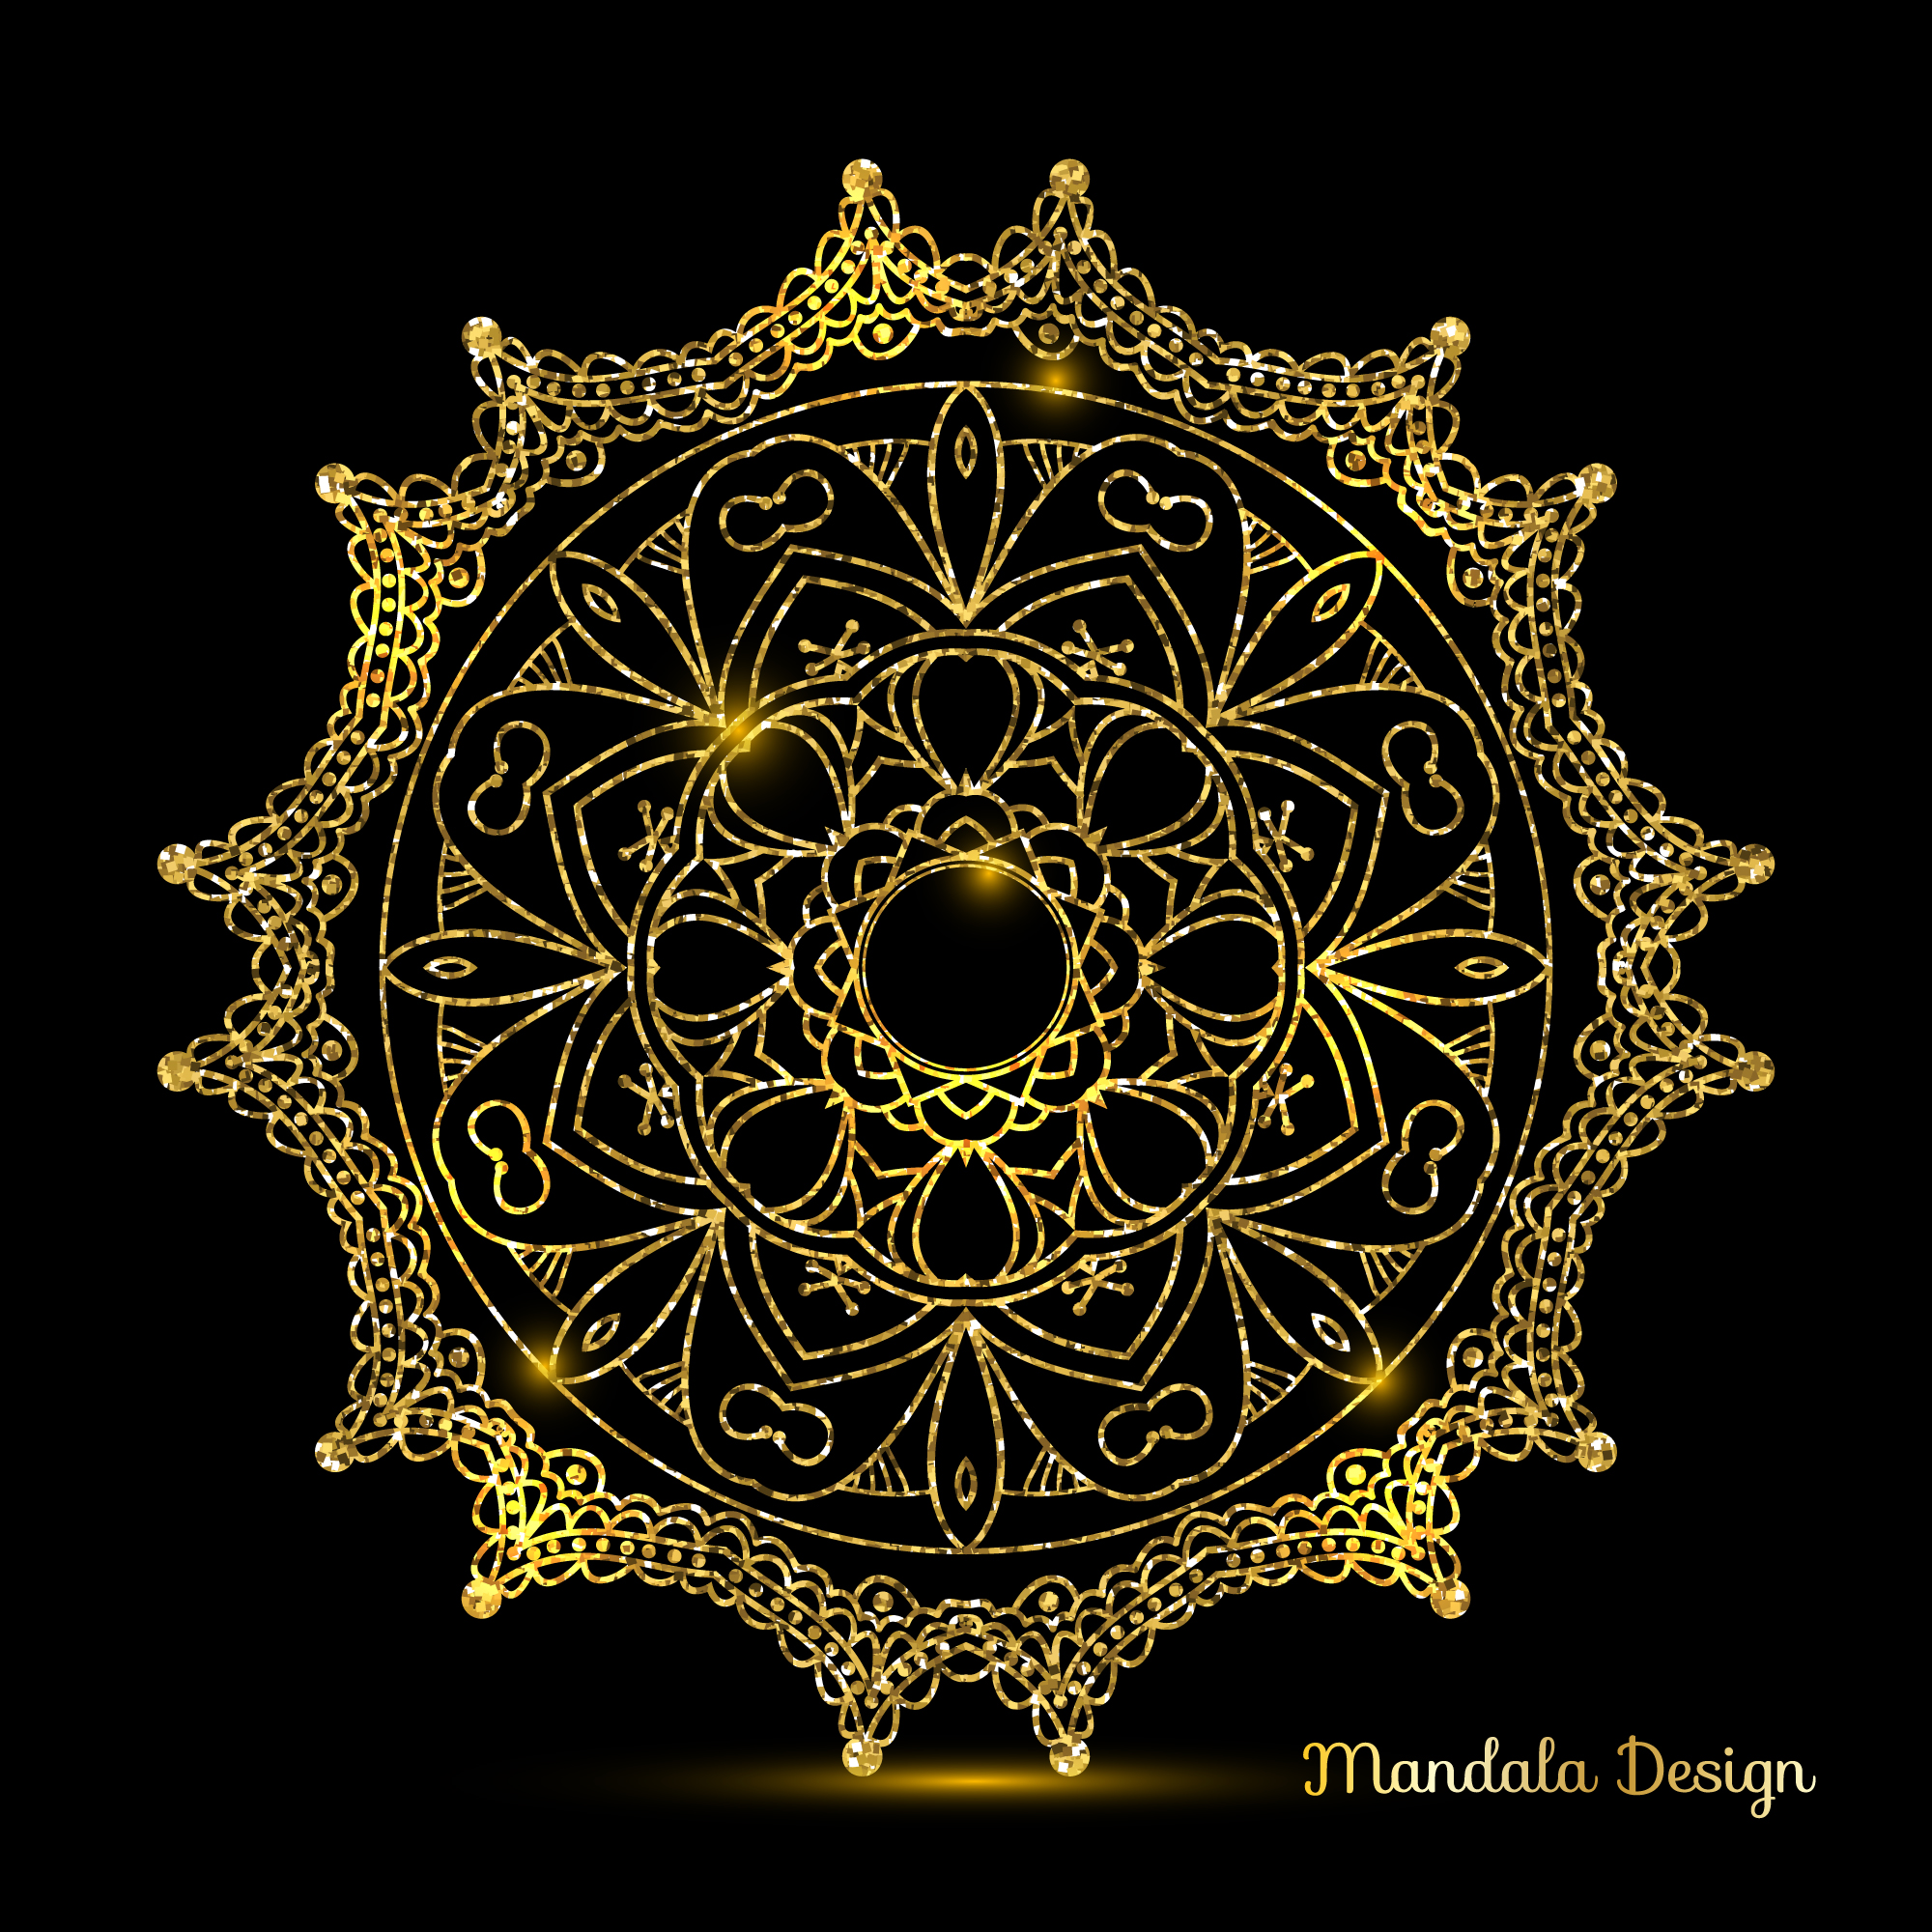 Conception Mandala d'or